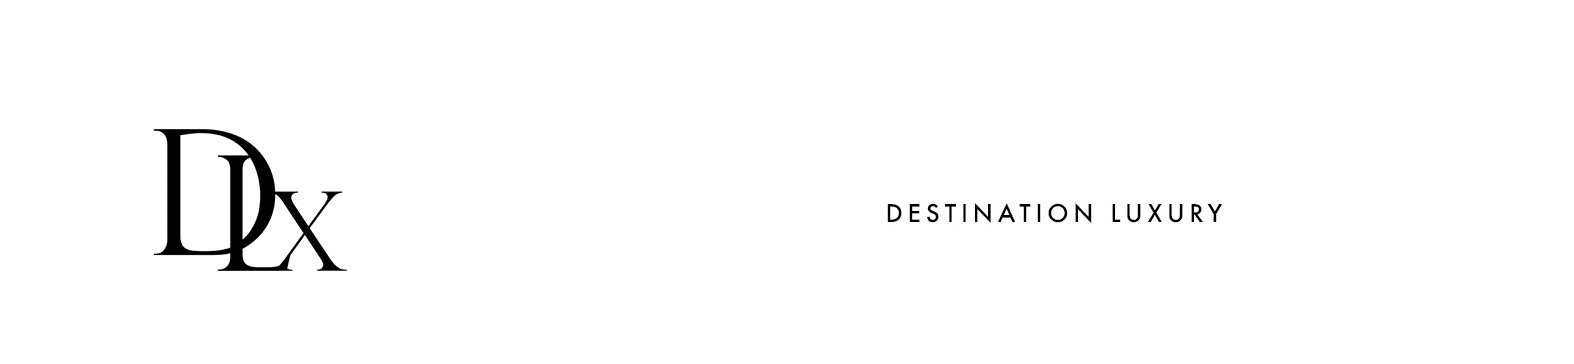 Destination Luxury logo